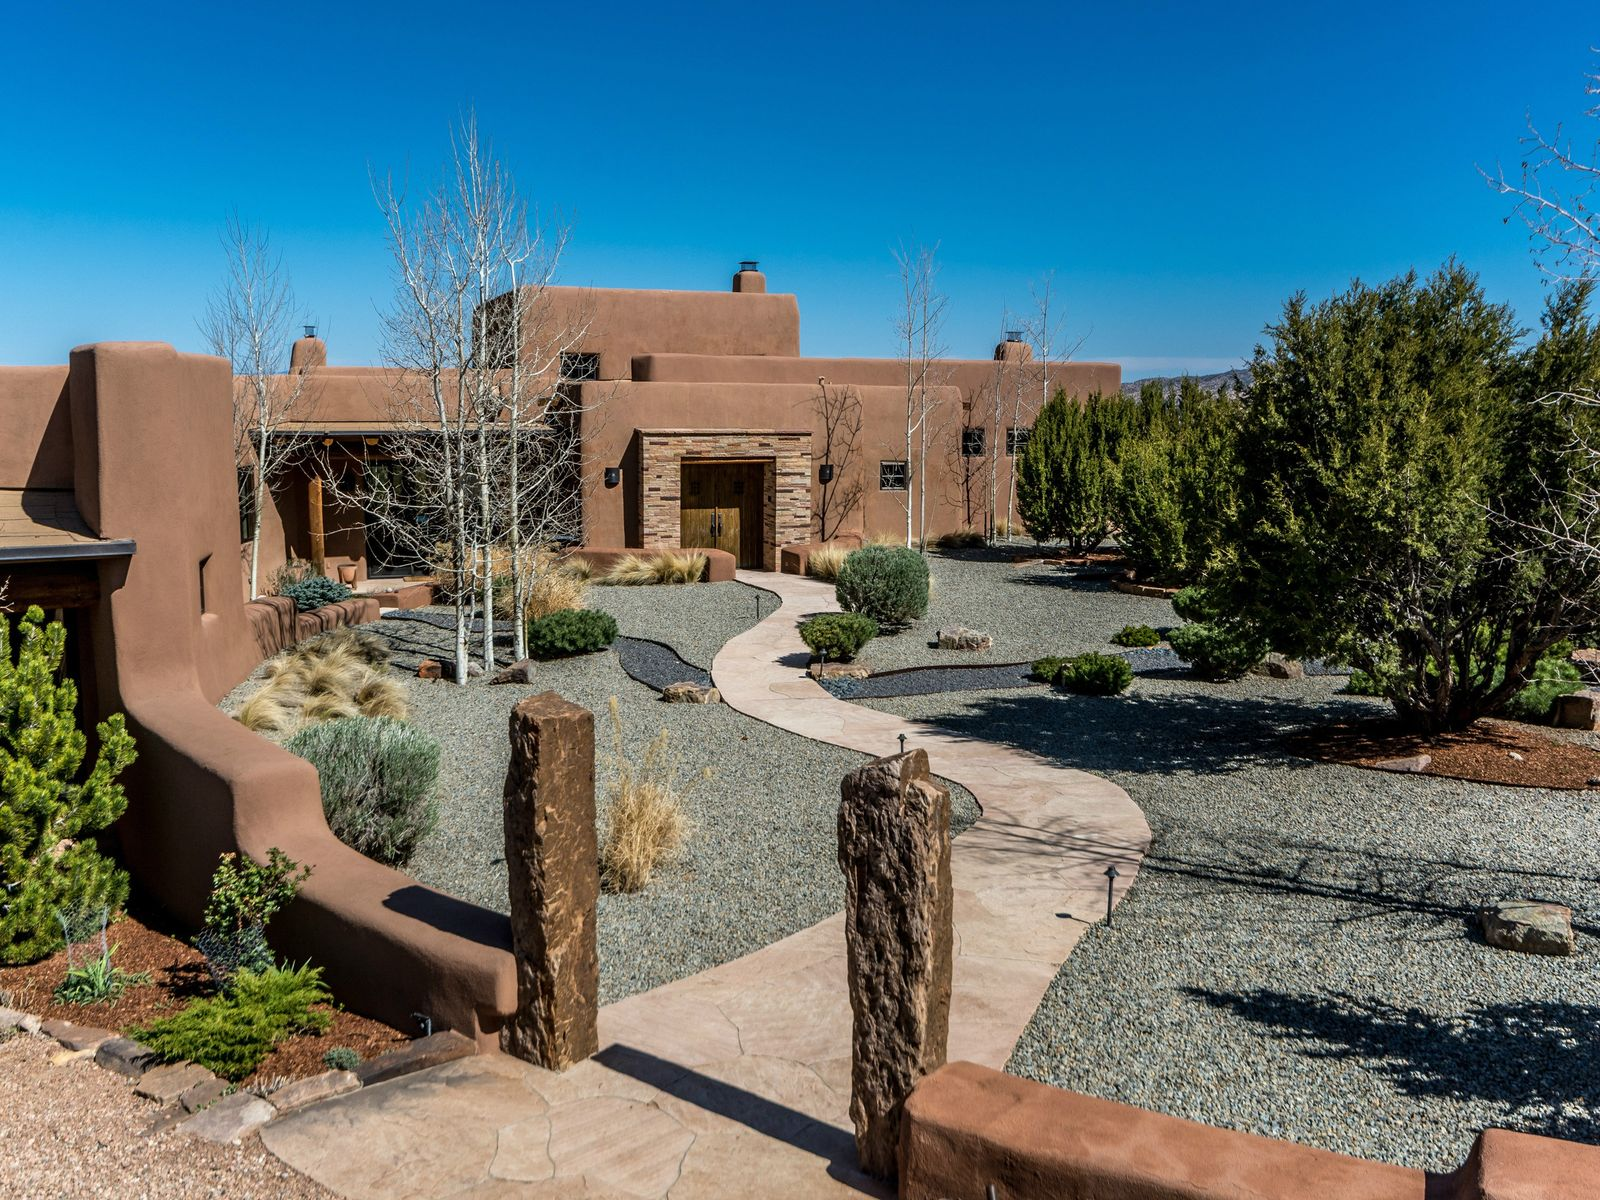 23 Vista Redonda, Santa Fe NM Single Family Home - Santa Fe Real Estate